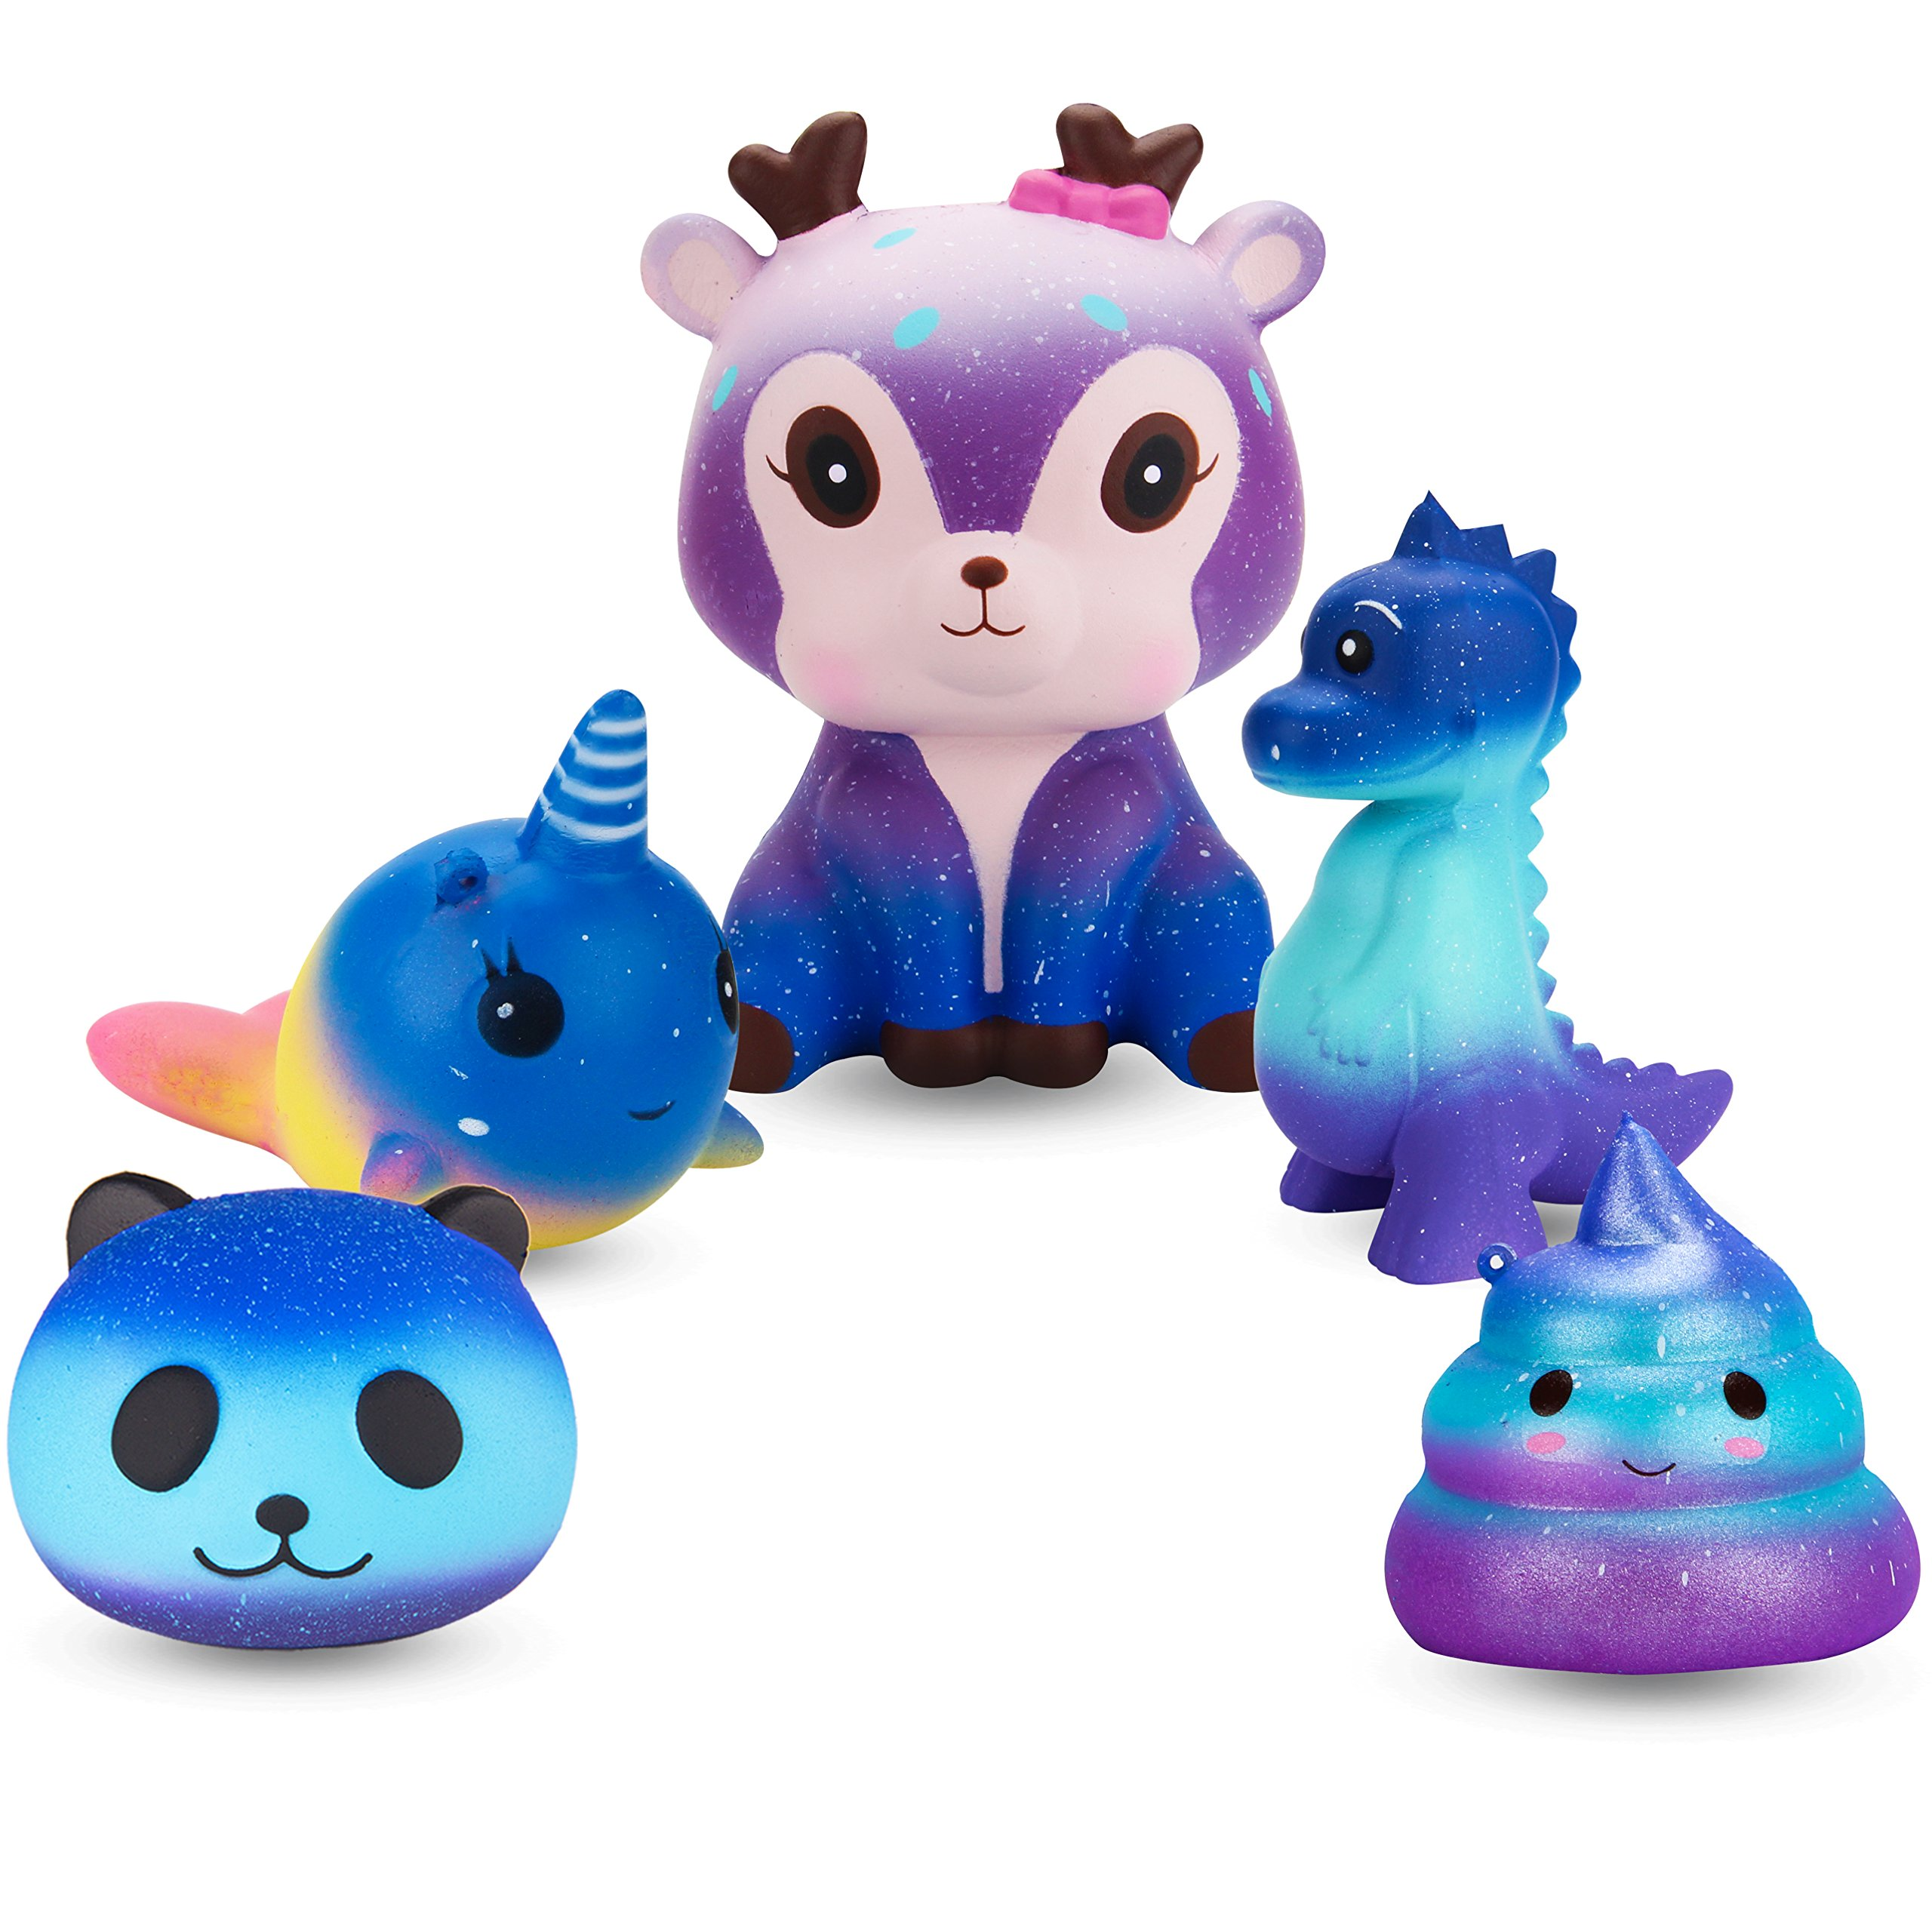 R ? HORSE Cute Galaxy Panda, Dolphin, Deer, Dinosaur, Excrement Set Kawaii Cream Scented Squishies Slow Rising Decompression Squeeze Toys for Kids or Stress Relief Toy (5 Pack)